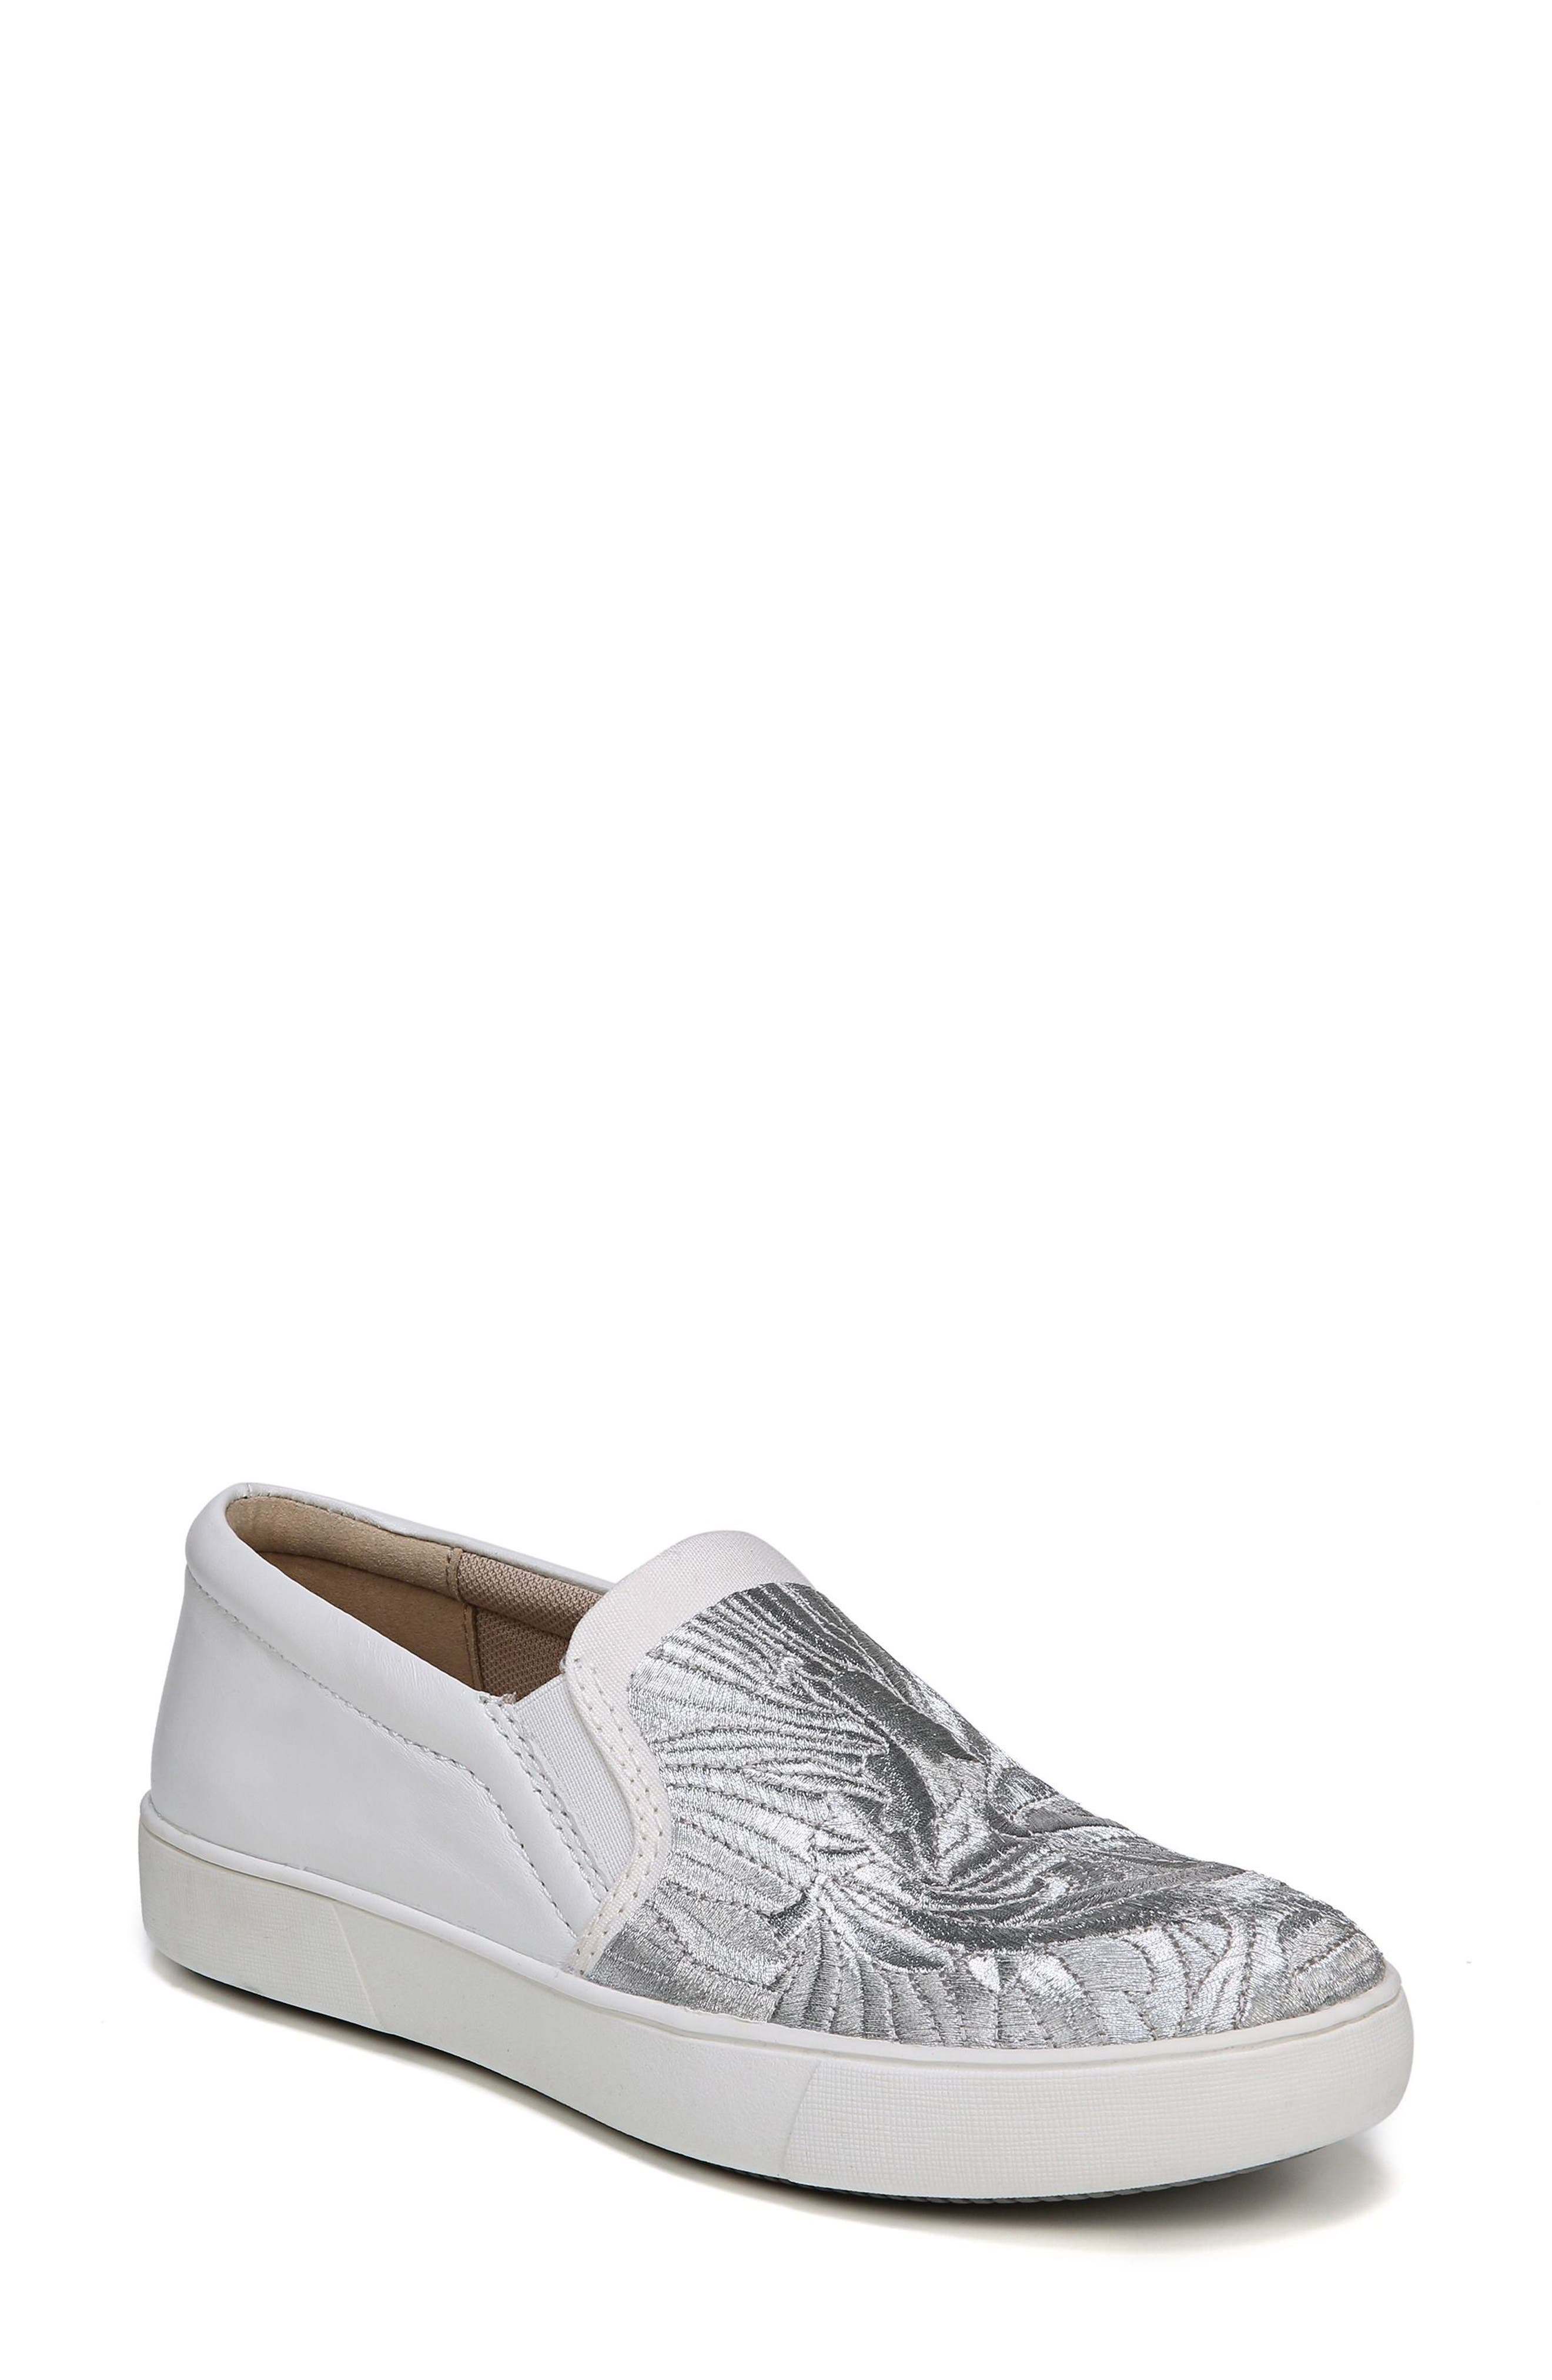 Marianne Slip-On Sneaker,                             Main thumbnail 1, color,                             White/ Silver Leather